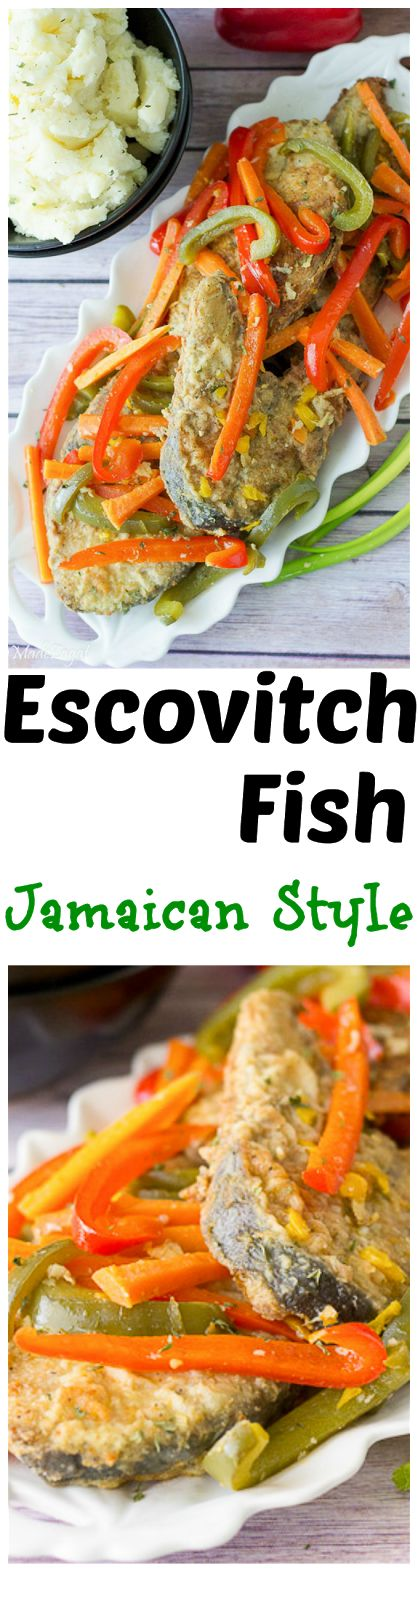 Escovitch Fish - An easy recipe to make Jamaican escovitch fish where the fish is fried and then sauced with vegetables cooked in a spicy vinegar marinade. @HomeMadeZagat